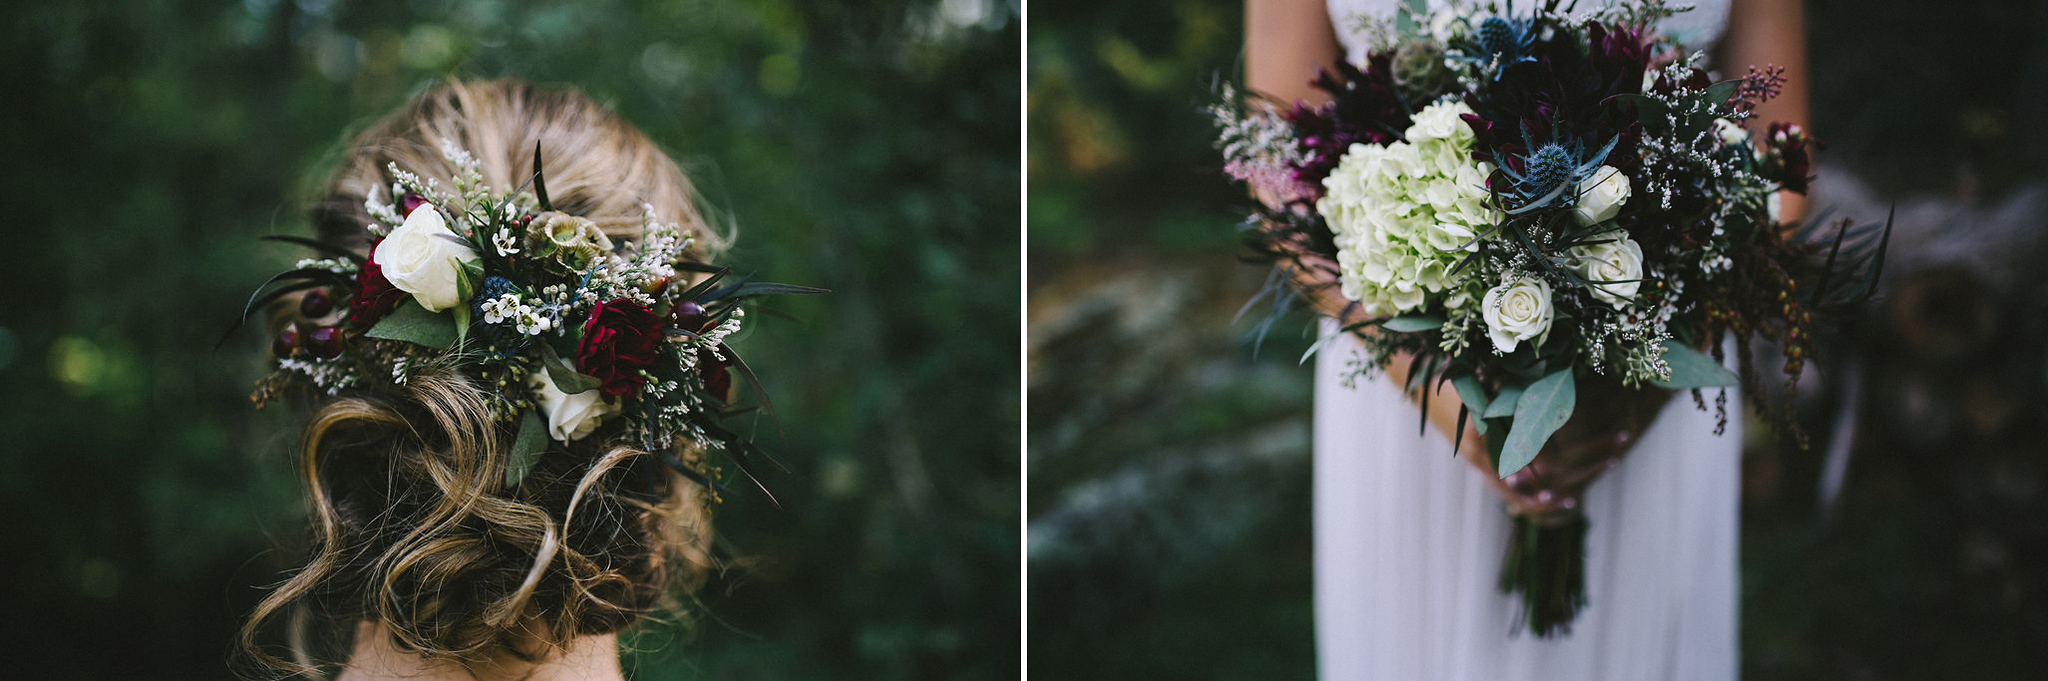 Burgundy wedding bouquet and hair comb